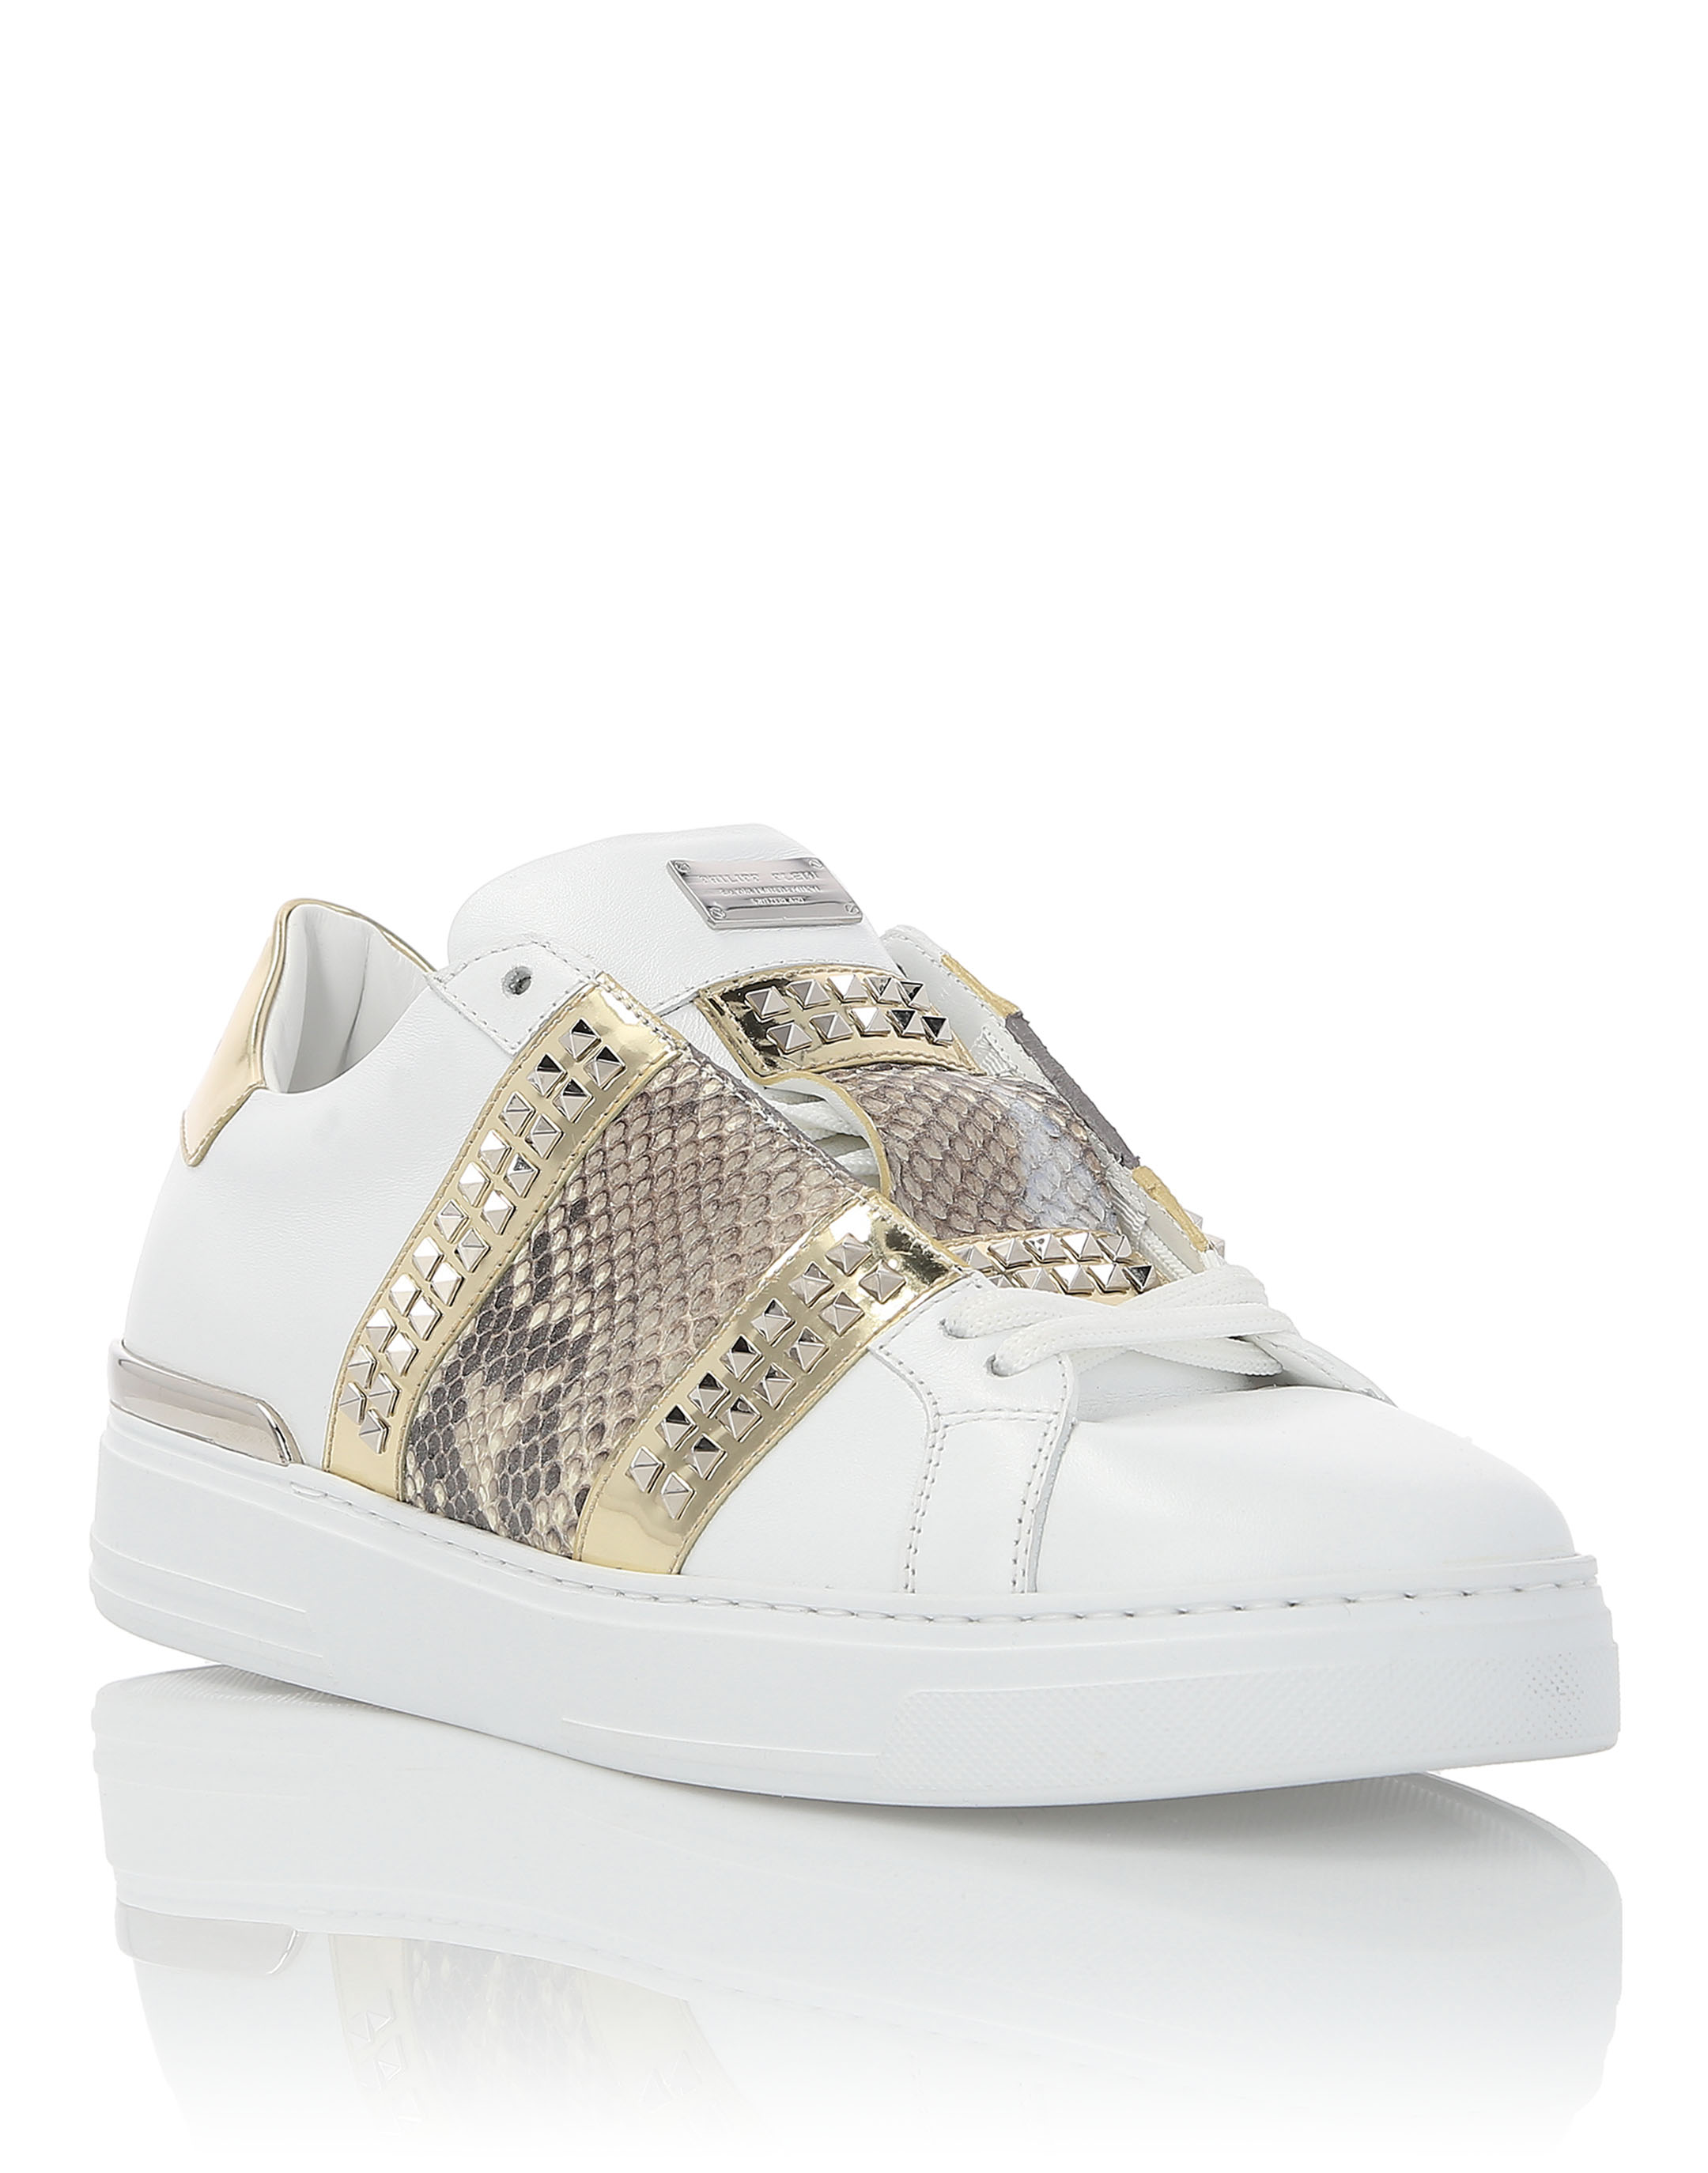 "PHILIPP PLEIN LO-TOP SNEAKERS ""BIG STRIPE"""